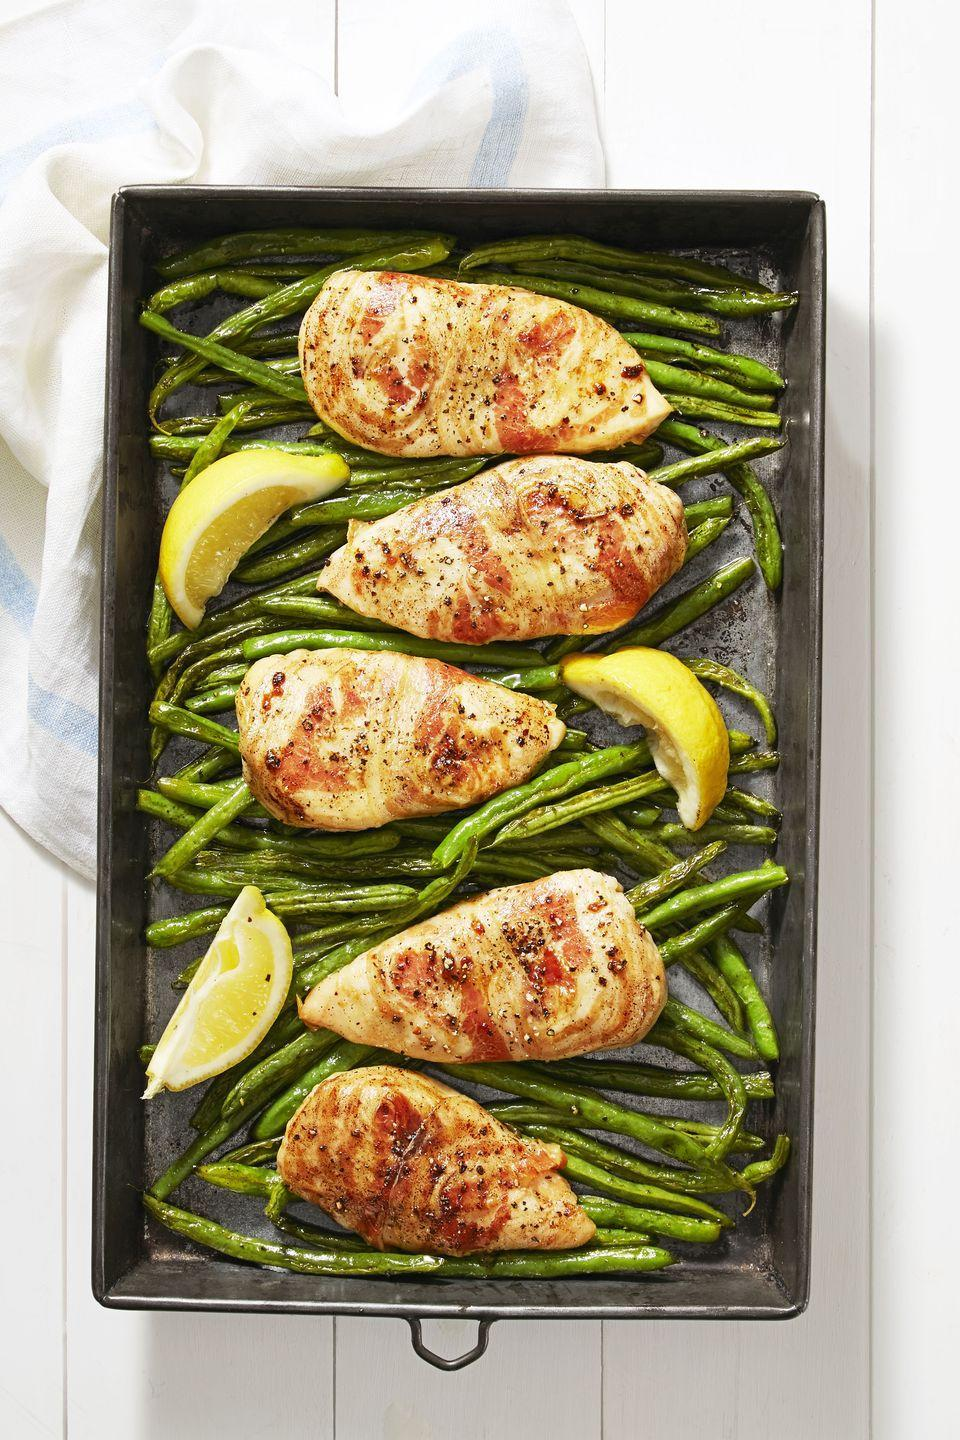 """<p>Because why wouldn't you wrap your chicken in pork?</p><p><em><a href=""""https://www.goodhousekeeping.com/food-recipes/a38872/pancetta-chicken-recipe/"""" rel=""""nofollow noopener"""" target=""""_blank"""" data-ylk=""""slk:Get the recipe for Pancetta Chicken »"""" class=""""link rapid-noclick-resp"""">Get the recipe for Pancetta Chicken »</a></em></p>"""